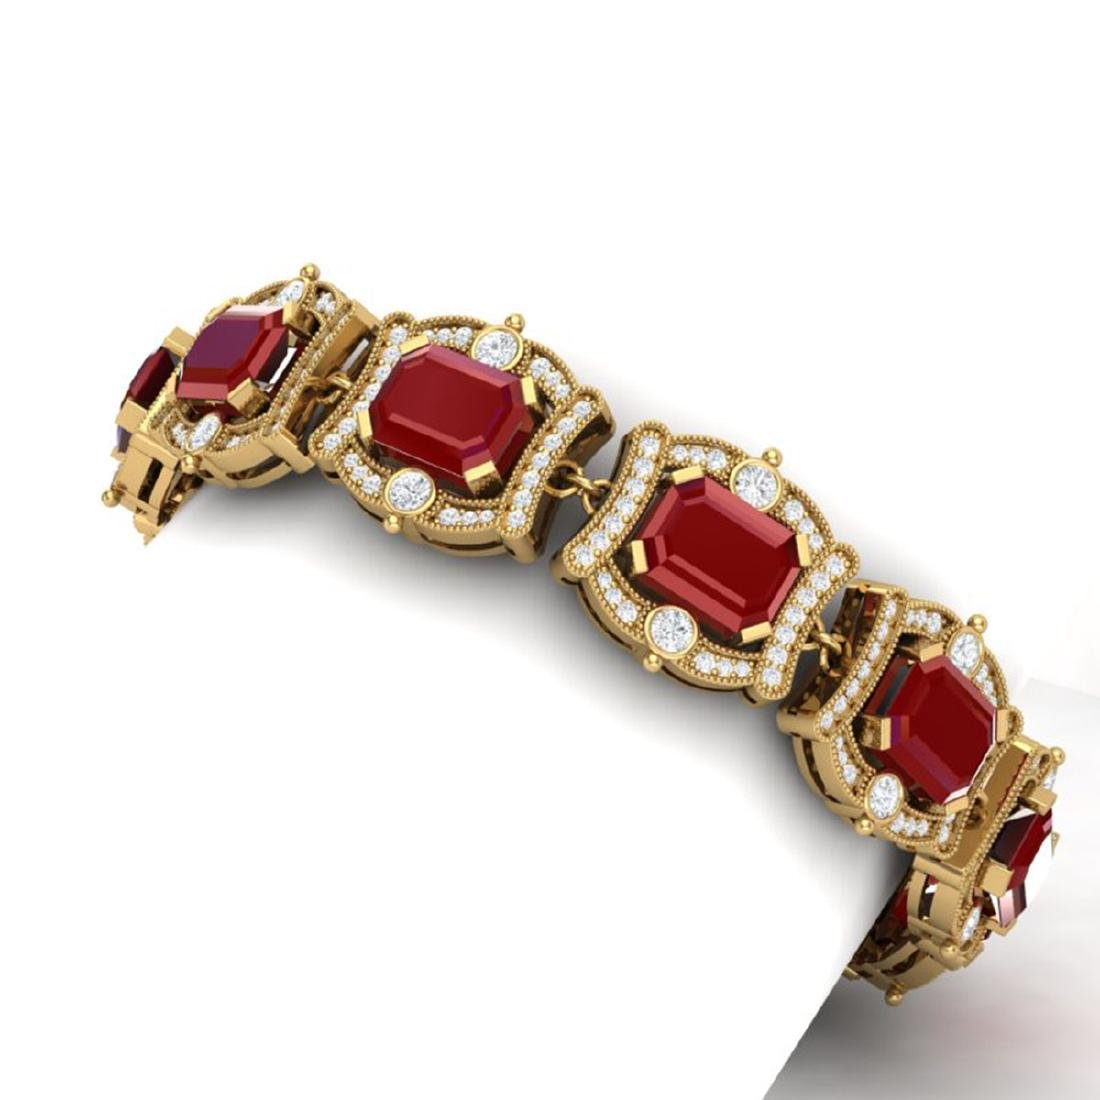 43.87 CTW Royalty Ruby & VS Diamond Bracelet 18K Yellow - 2